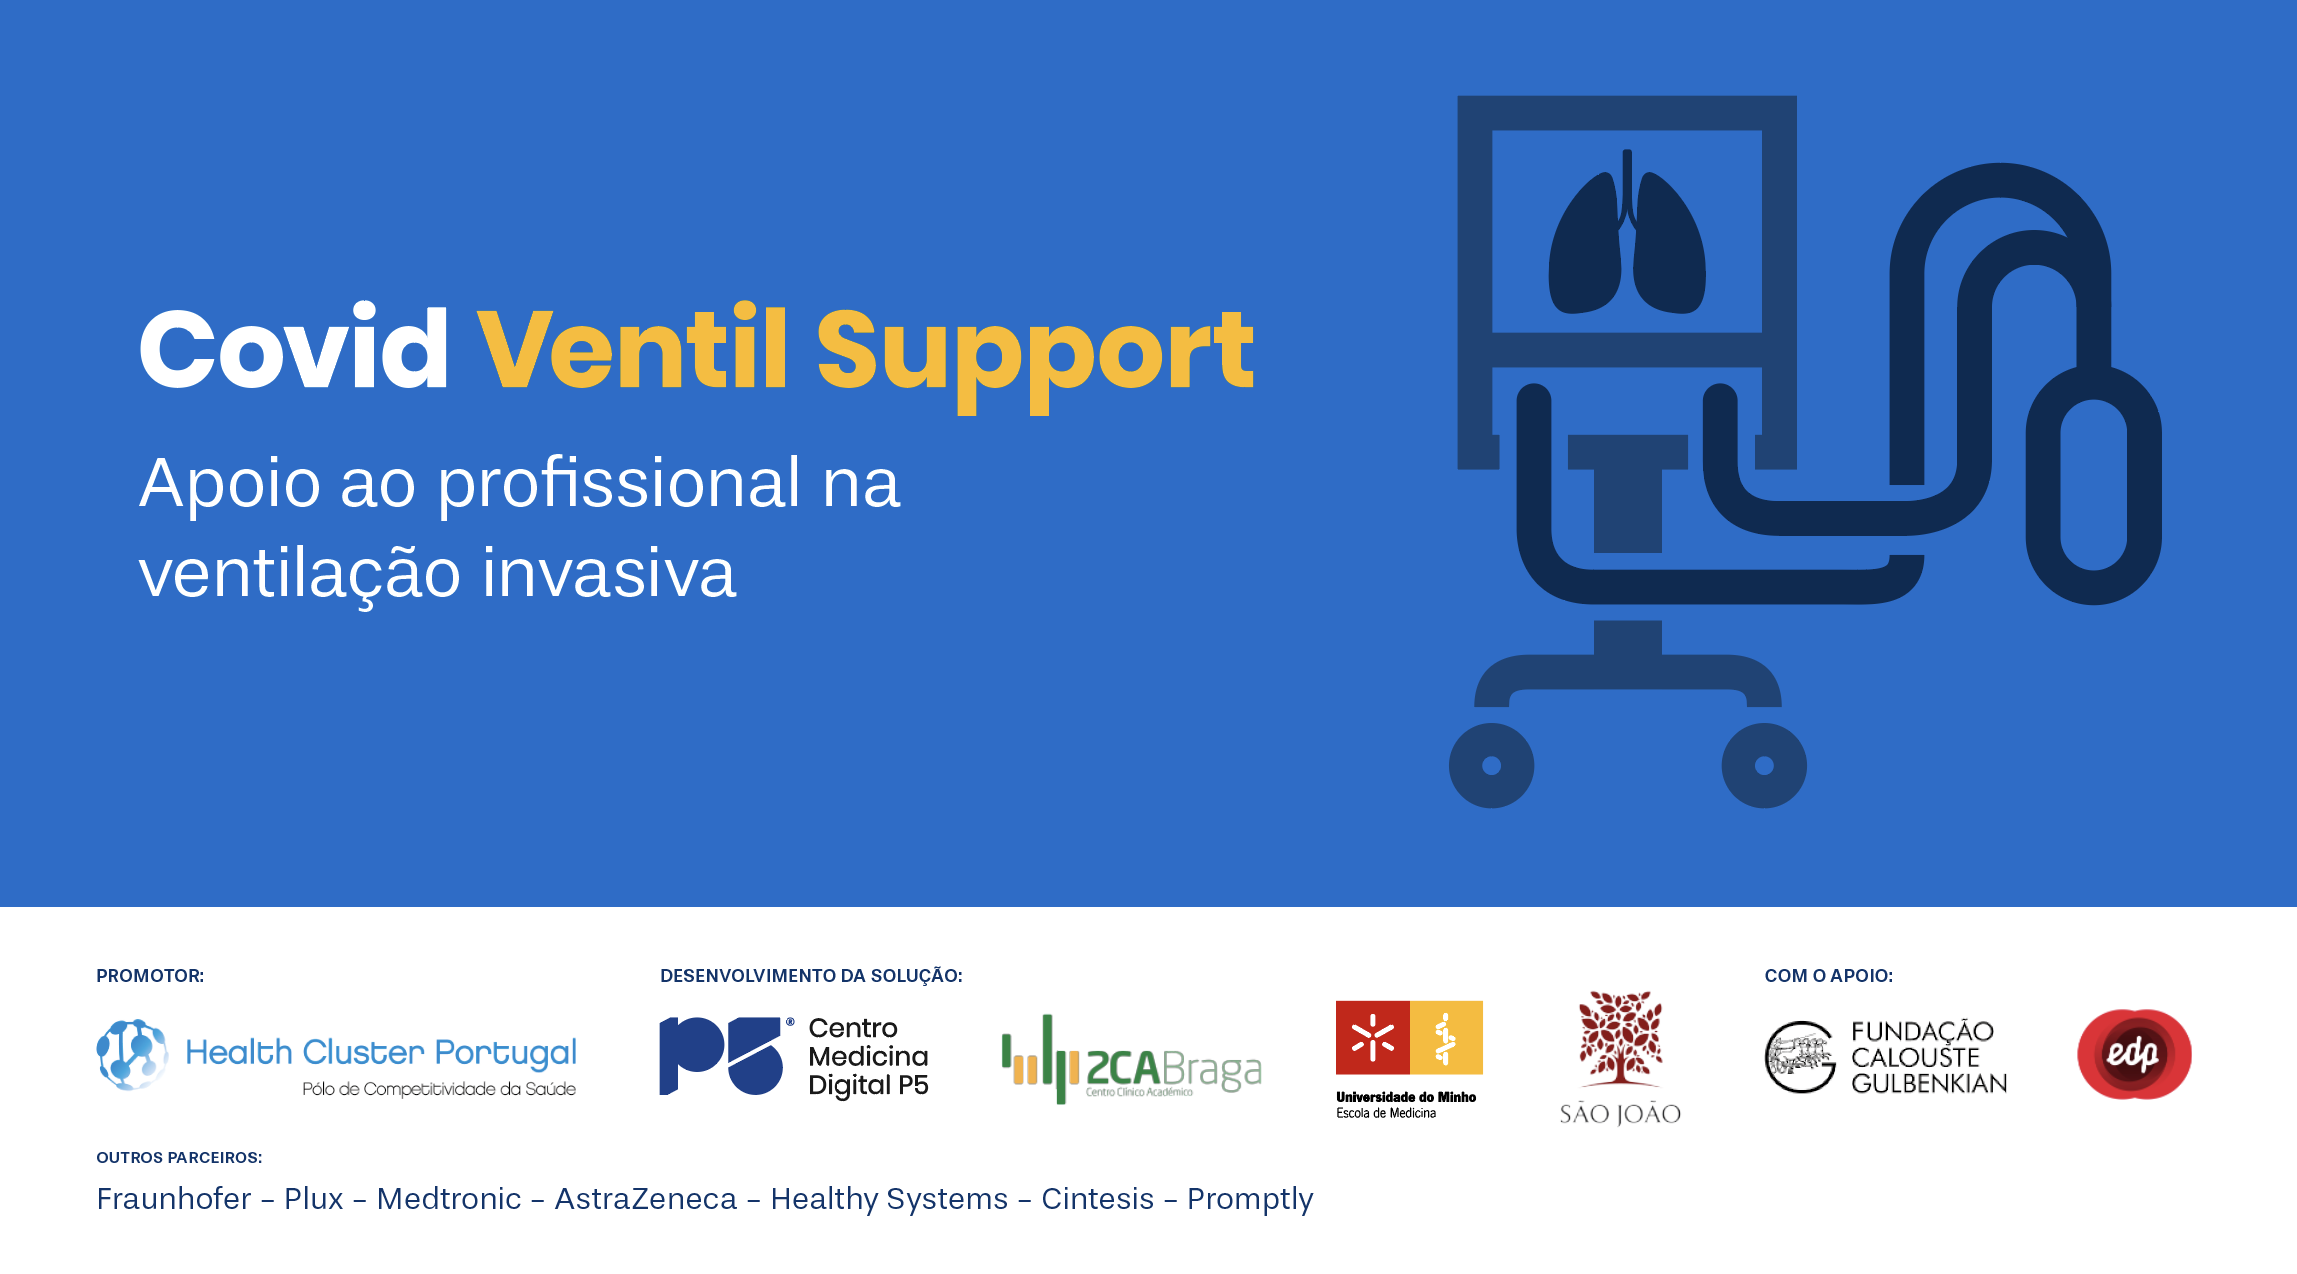 COVID Ventil Support